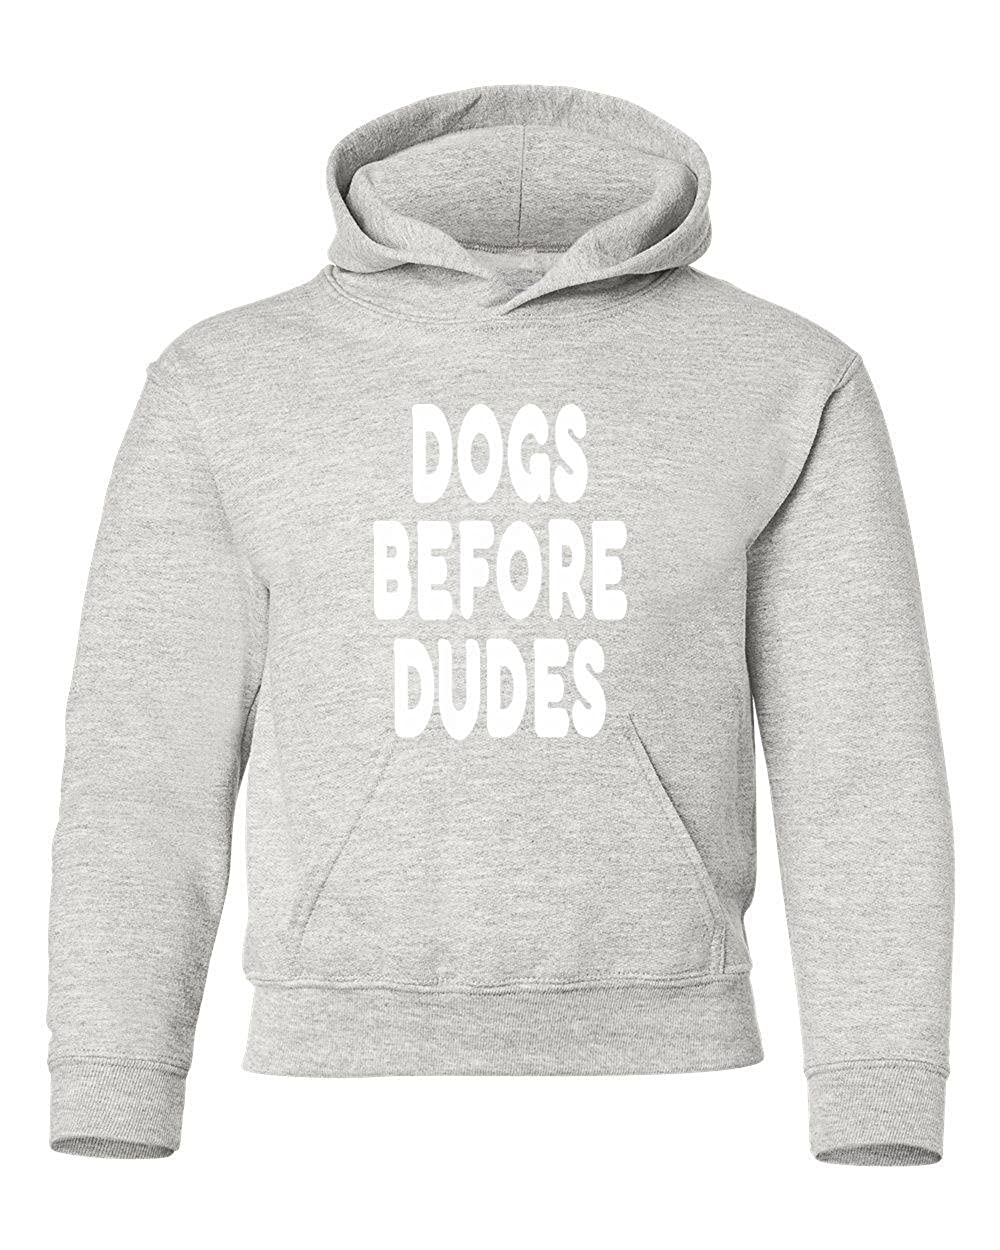 Marky G apparel Boys Dogs Before Dudes T-Shirt